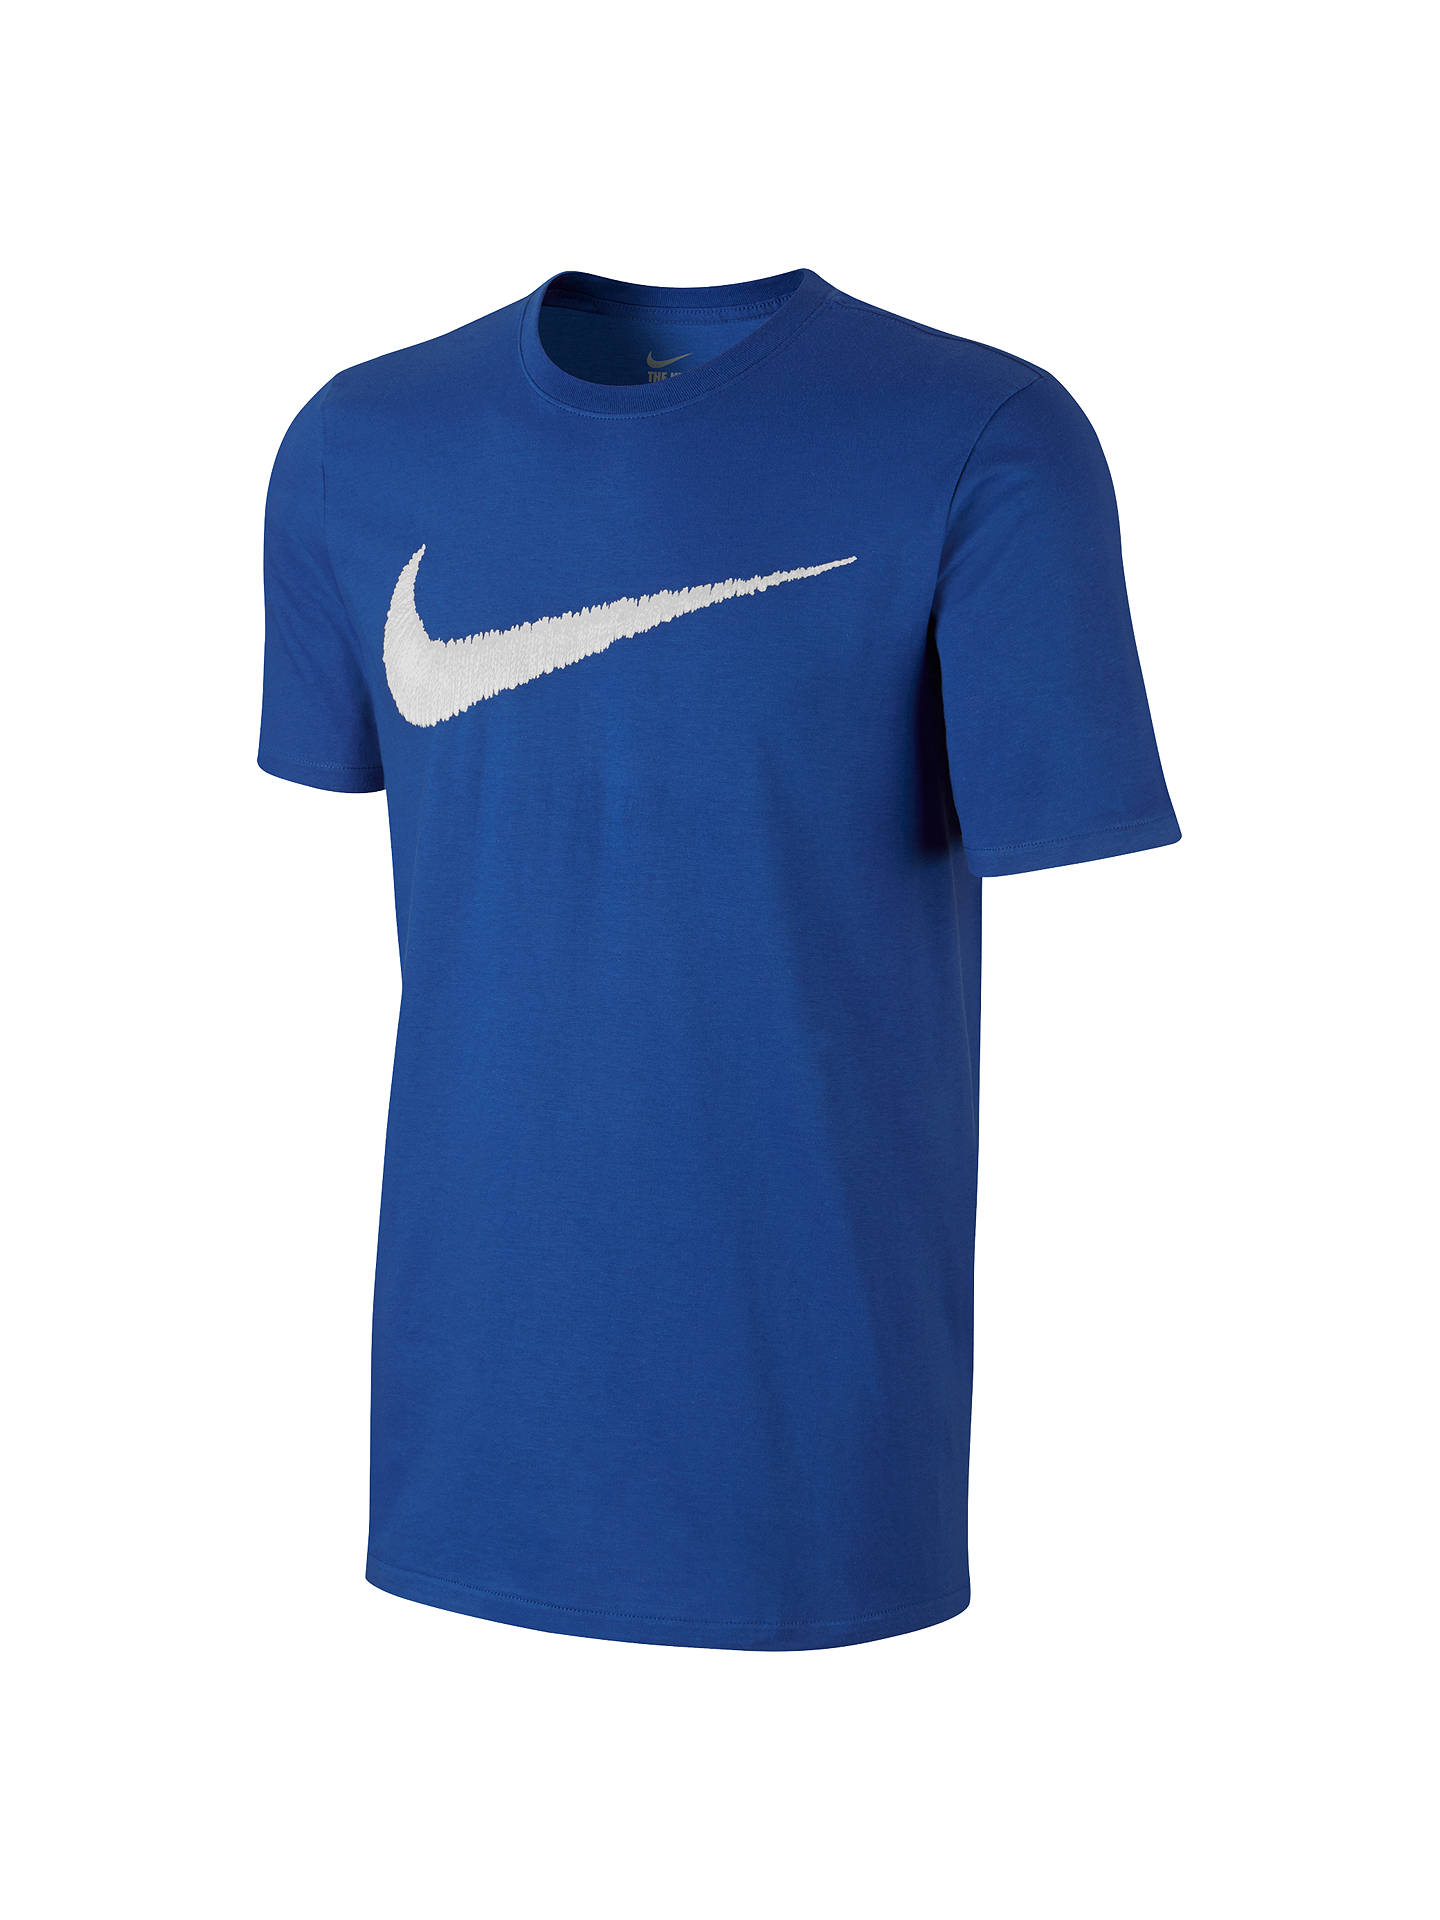 5f5fb9afb Buy Nike Sportswear Swoosh Cotton T-Shirt, Blue/White, S Online at ...